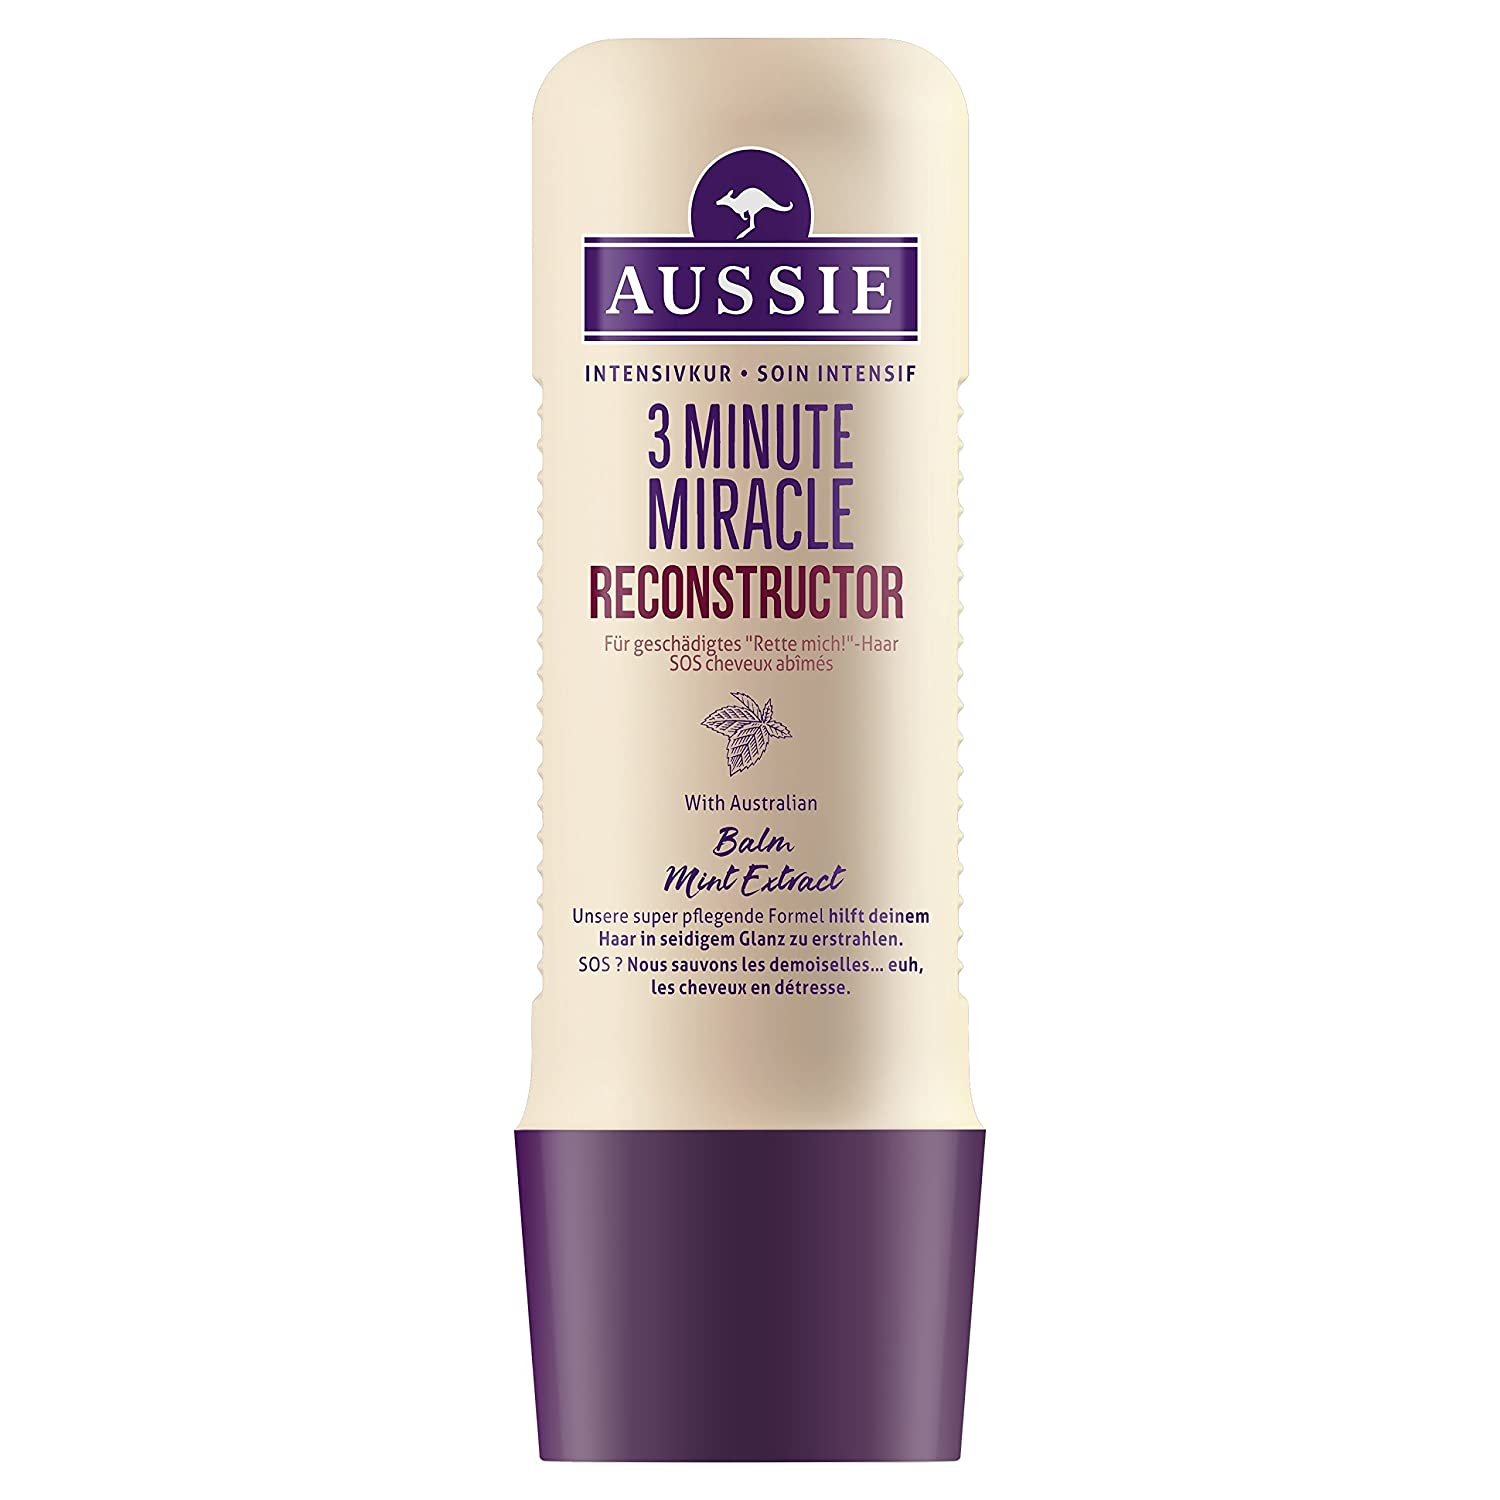 Aussie 3 Minute Miracle Reconstructor Intensivkur 1er Pack (1 x 250 ml) Procter & Gamble 3 minutes miracle